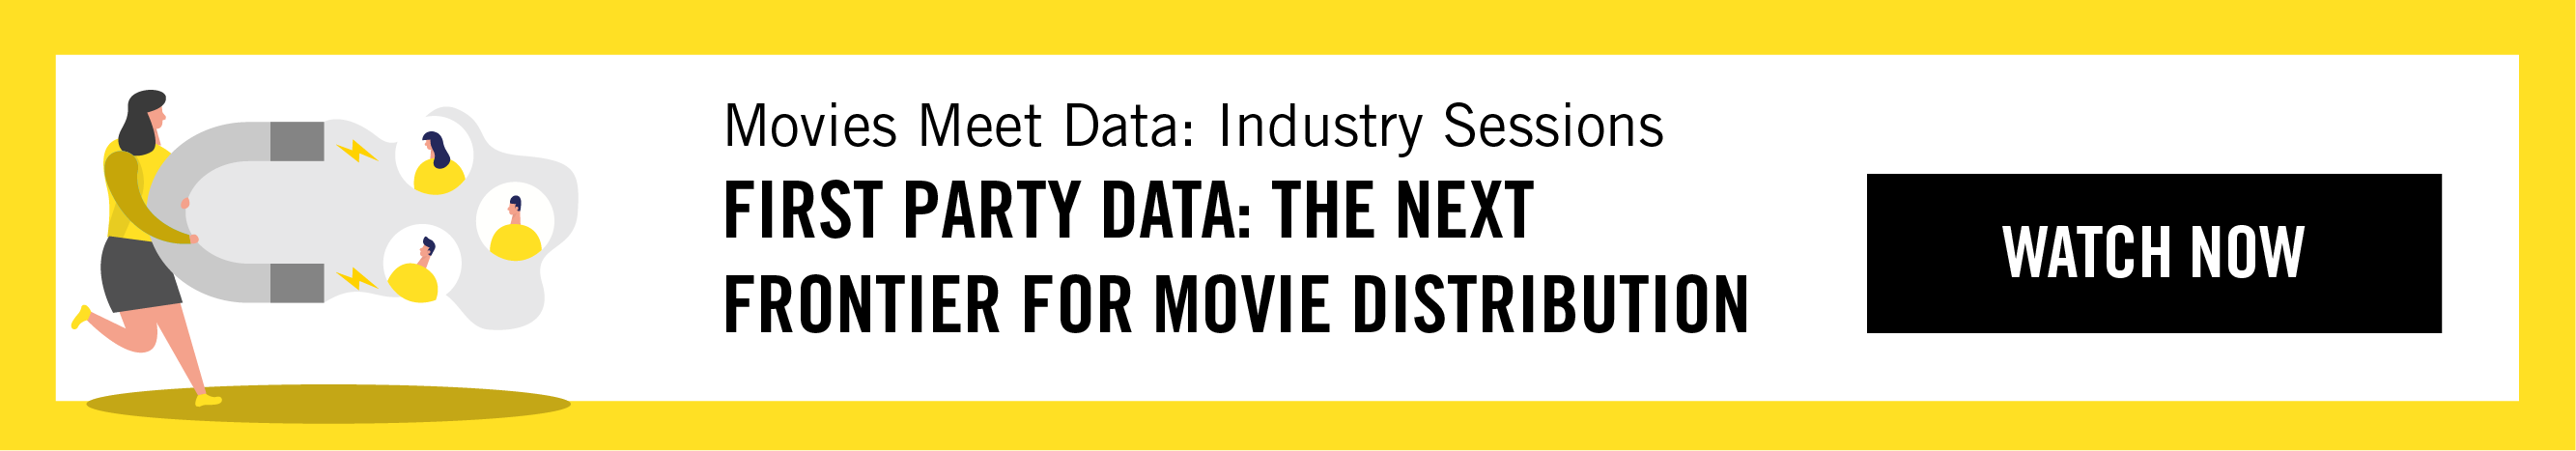 Movies Meet Data Industry Session image